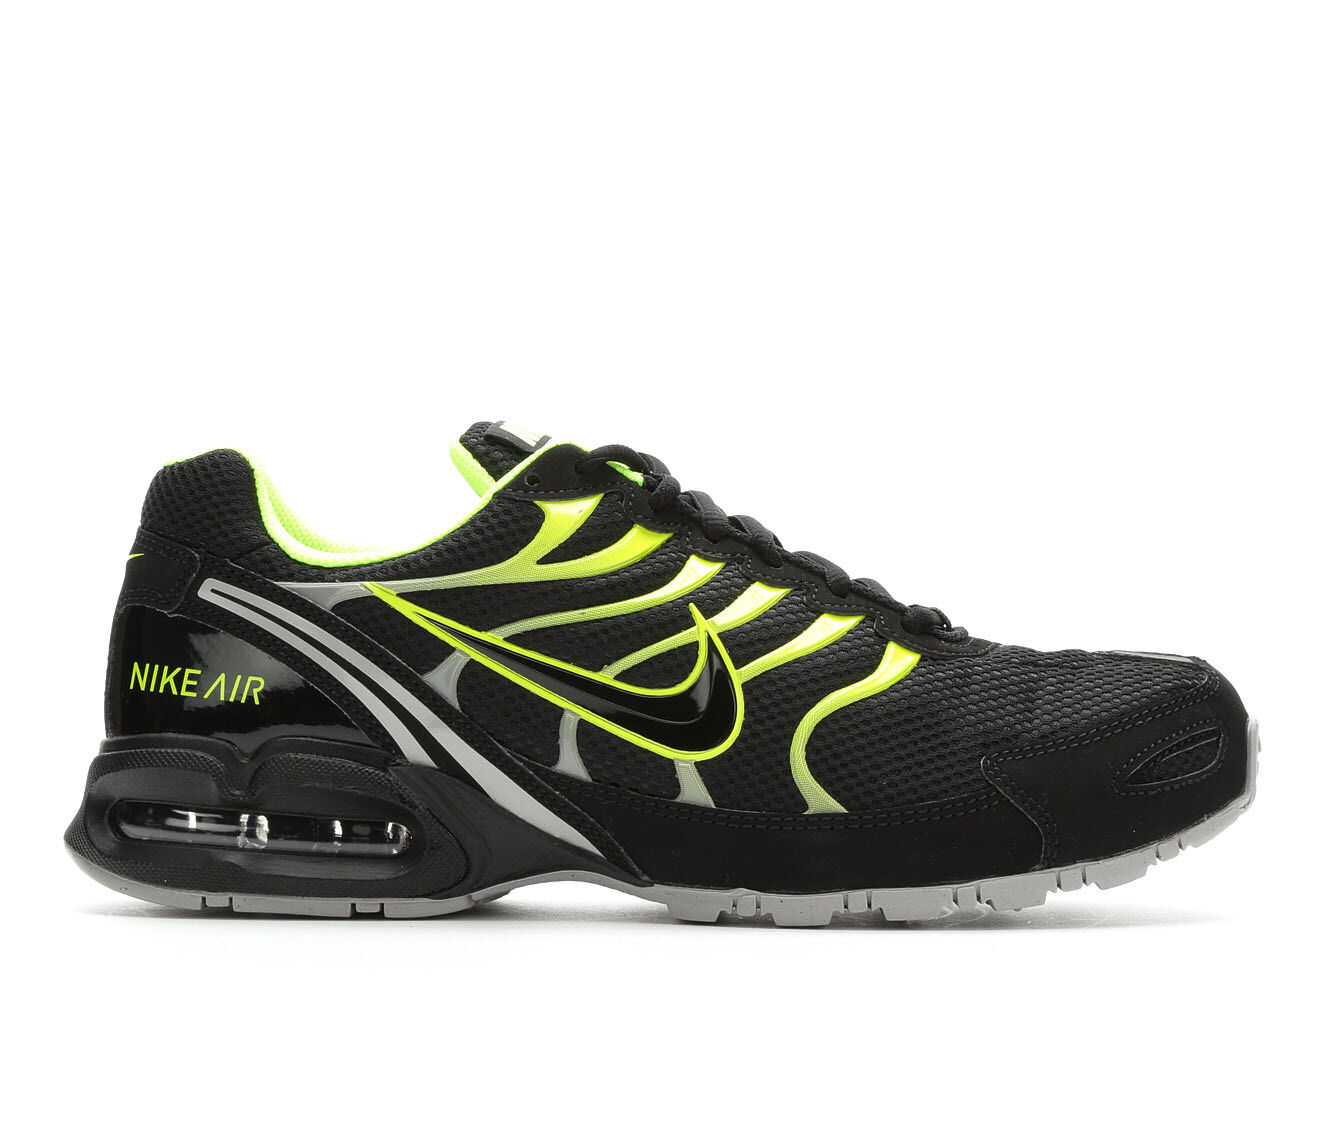 Air Torch Max 4 Running Nike Men's Shoes j54R3LA